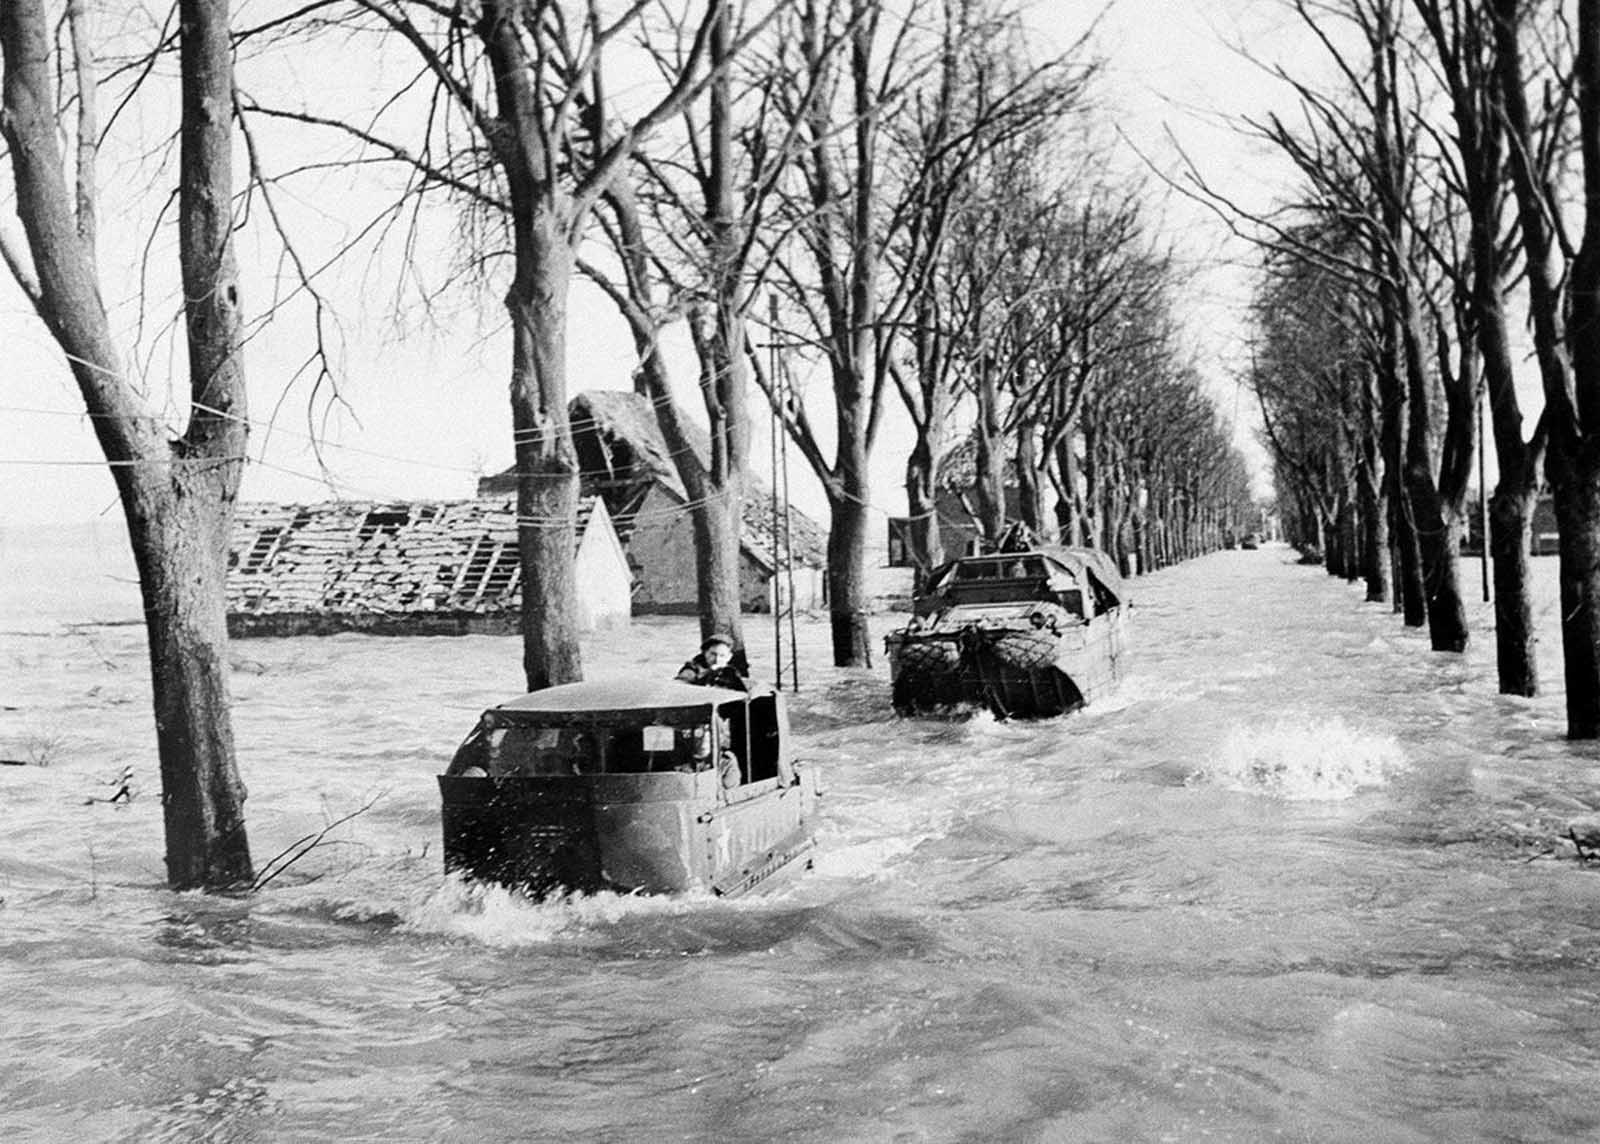 A party sets out to repair telephone lines on the main road in Kranenburg on February 22, 1945, amid four-foot deep floods caused by the bursting of Dikes by the retreating Germans. During the floods, British troops further into Germany have had their supplies brought by amphibious vehicles.